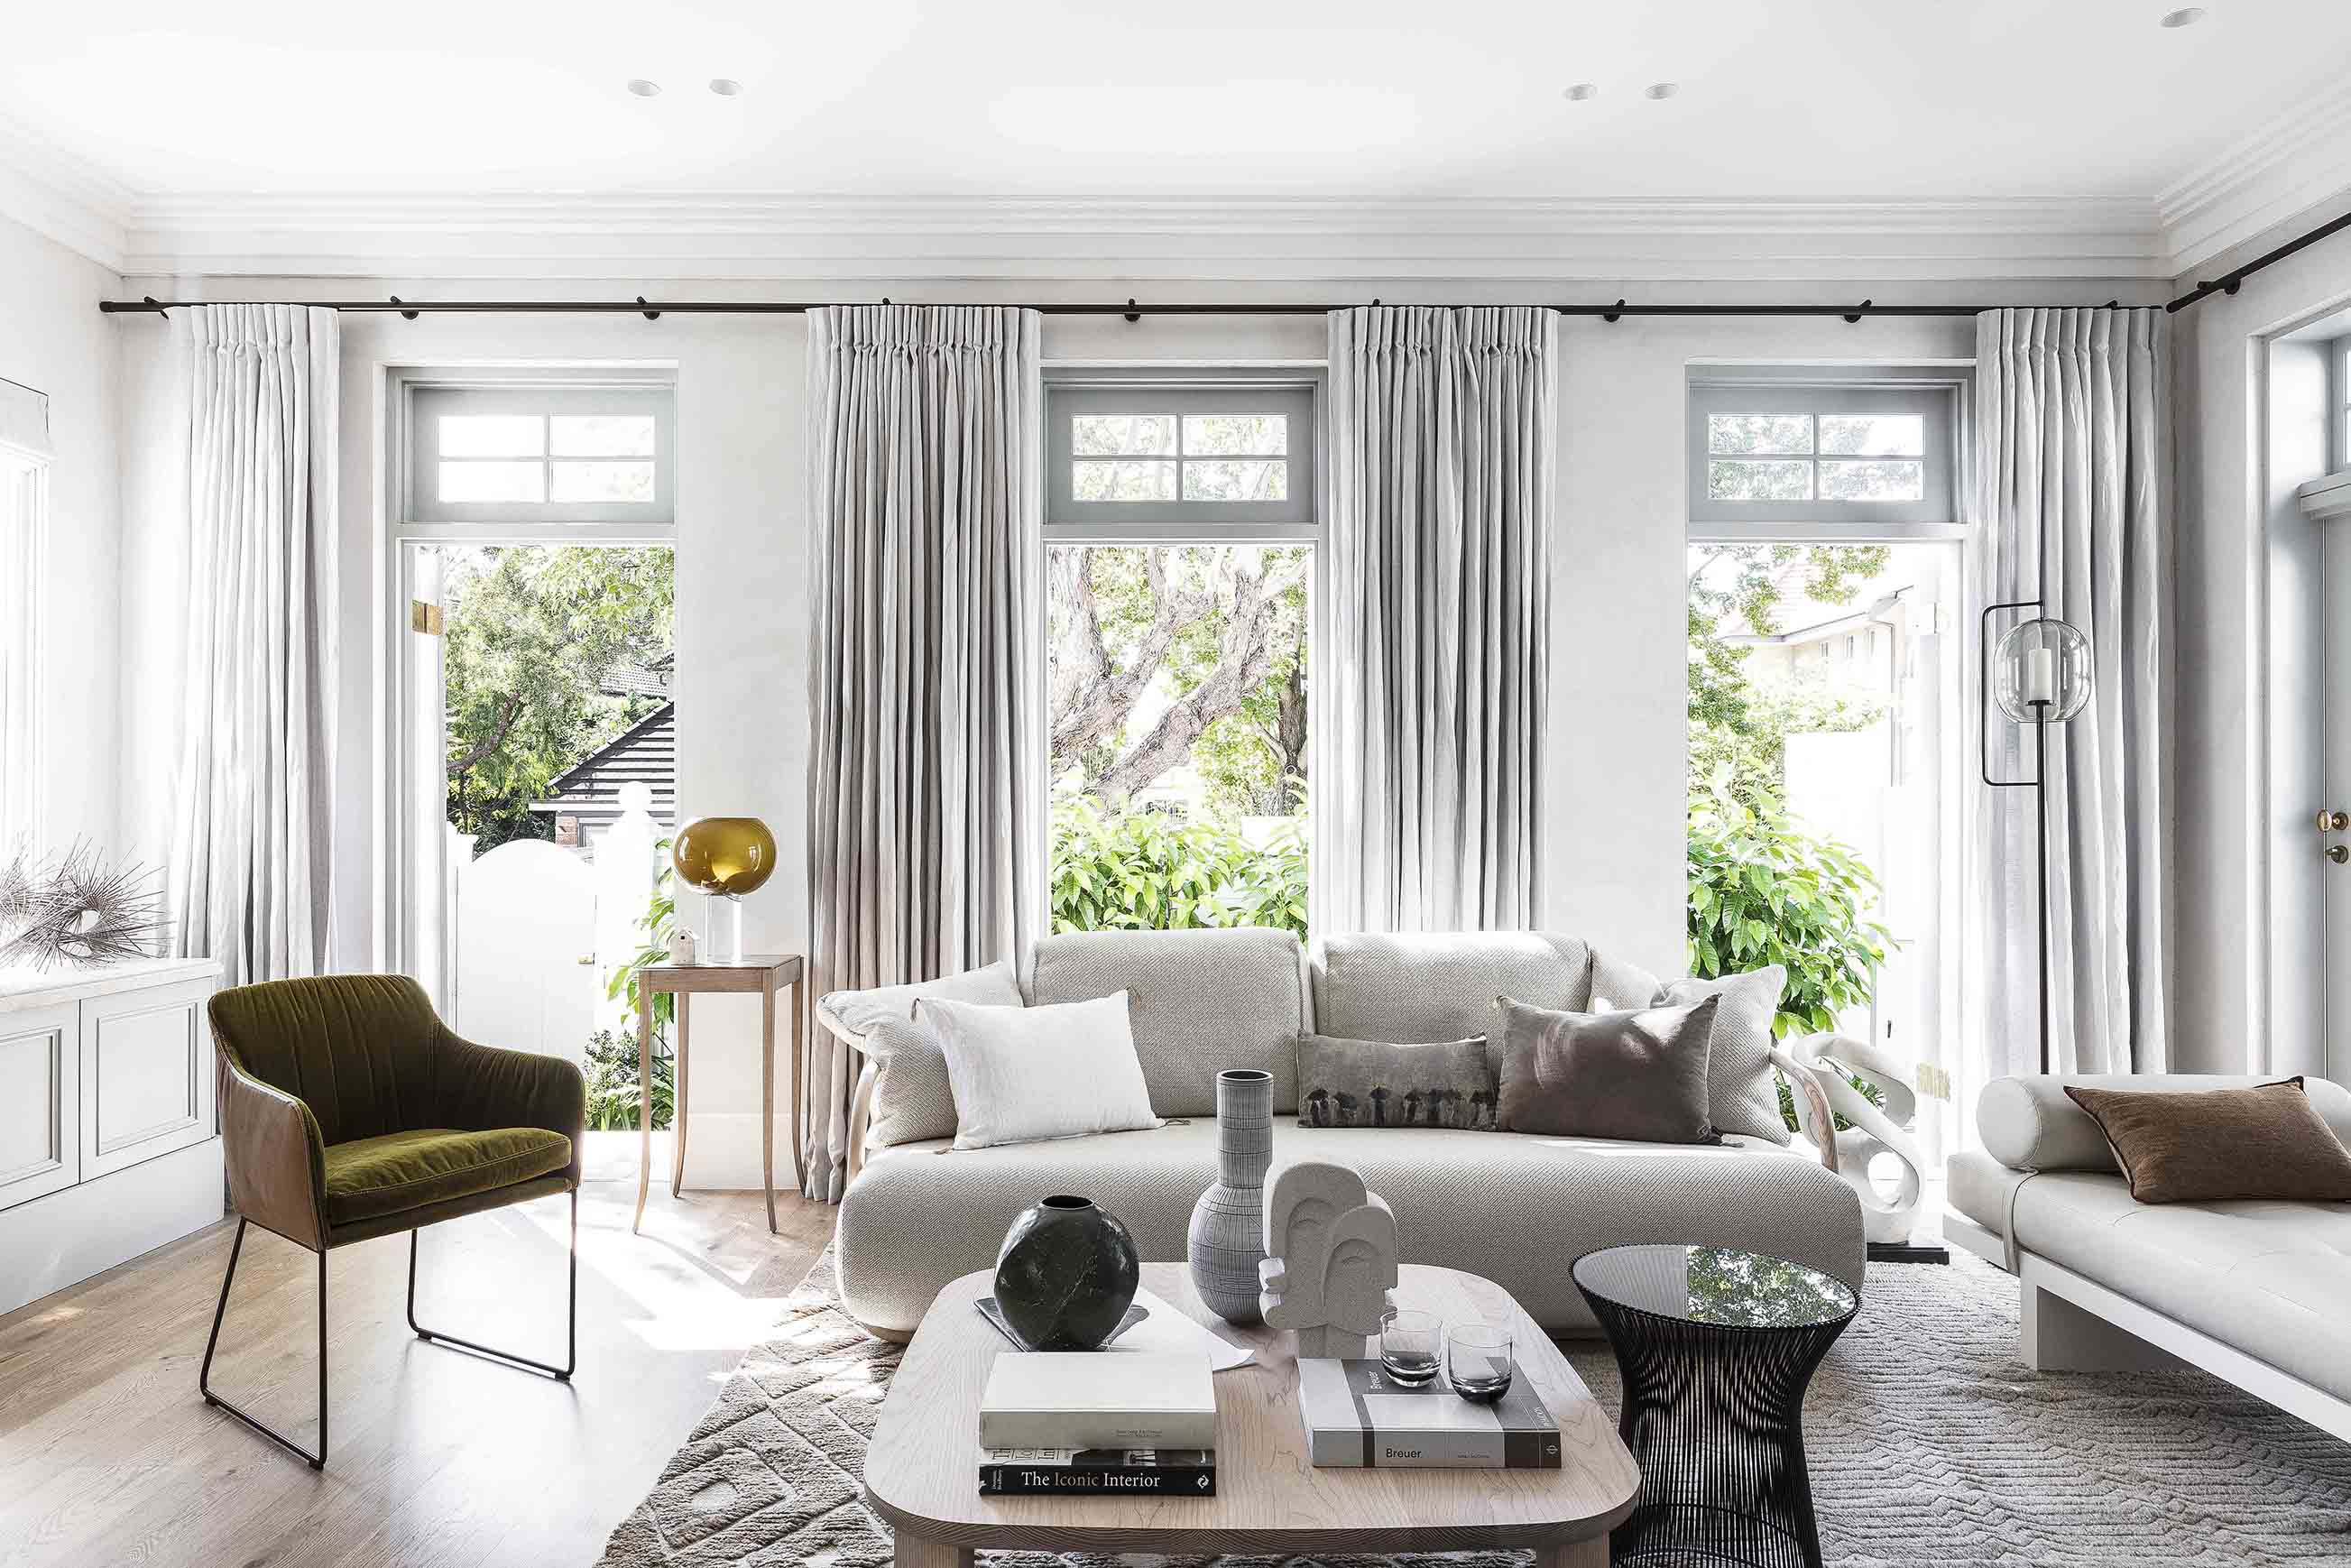 4_Darling Point_Living Area_Photography by Tom Ferguson_Editorial Styling by Claire Delmar